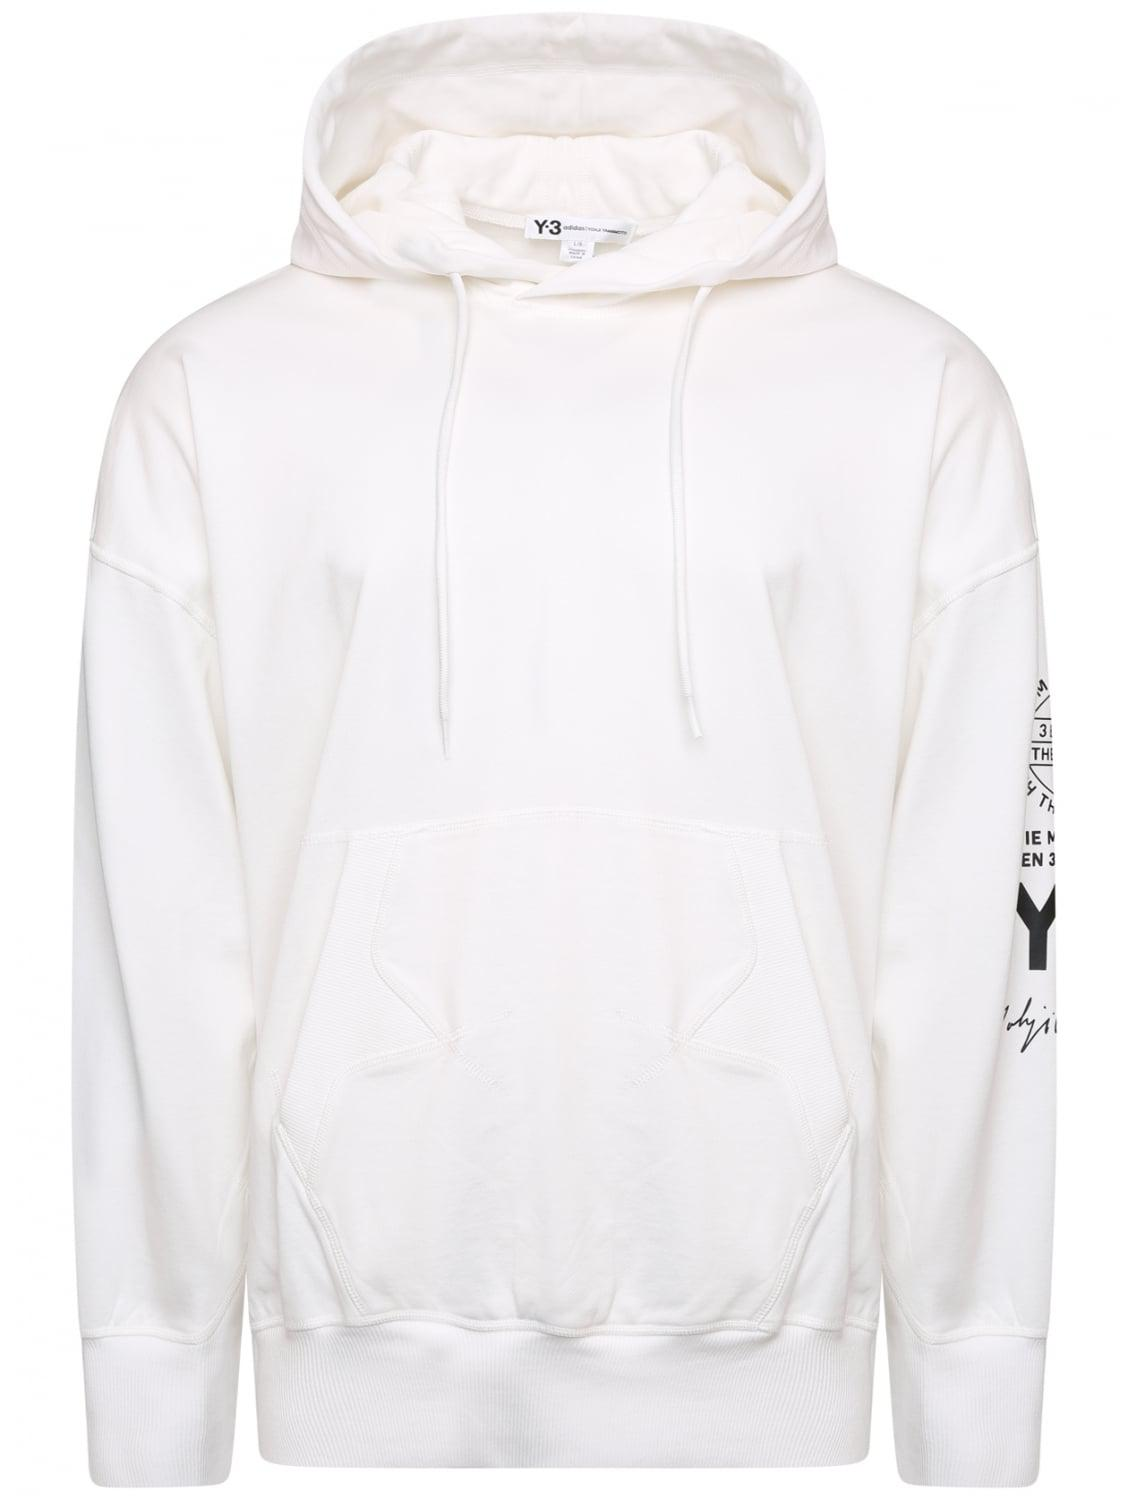 c1004dc7706a Lyst - Y-3 Logo Street Hoodie White in White for Men